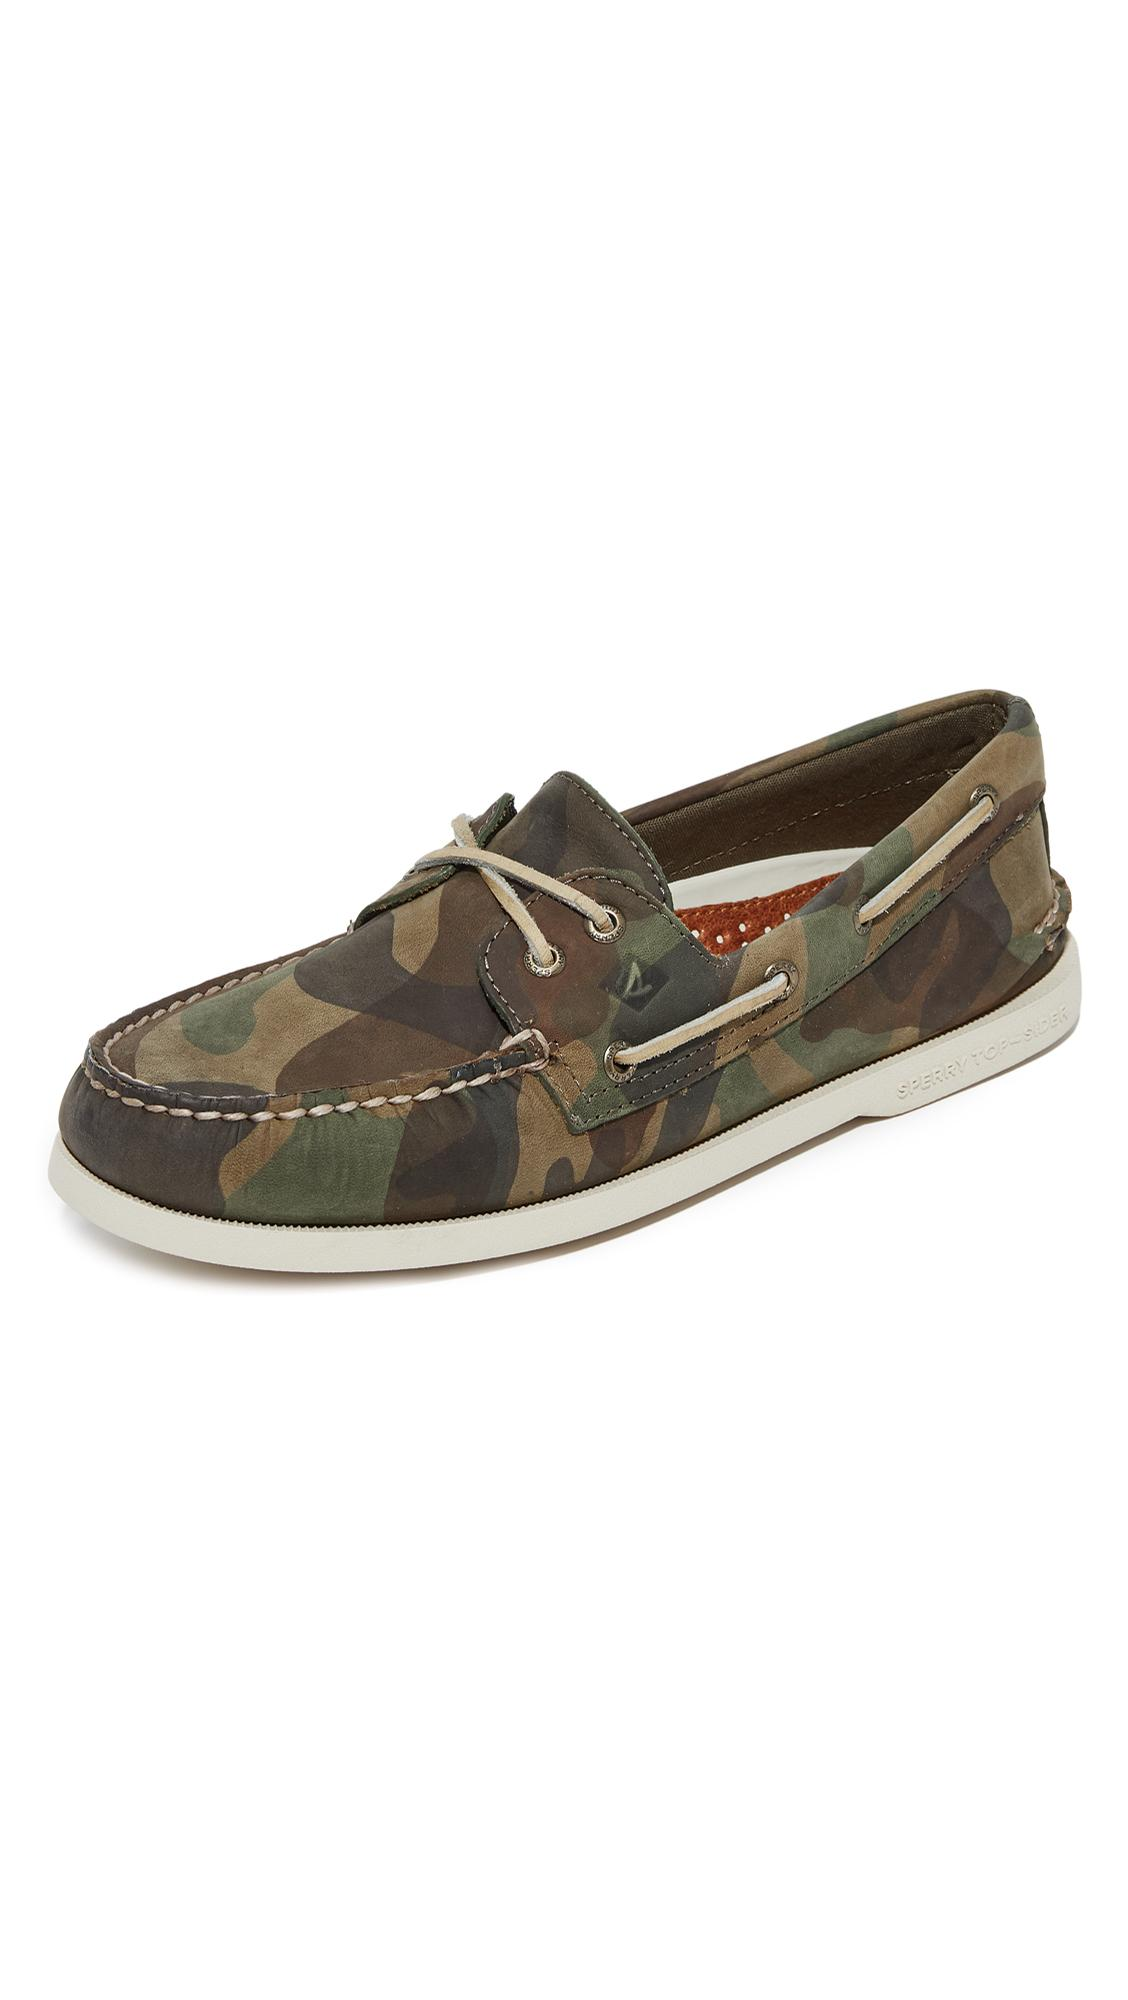 Where To Buy Sperry Shoe Laces